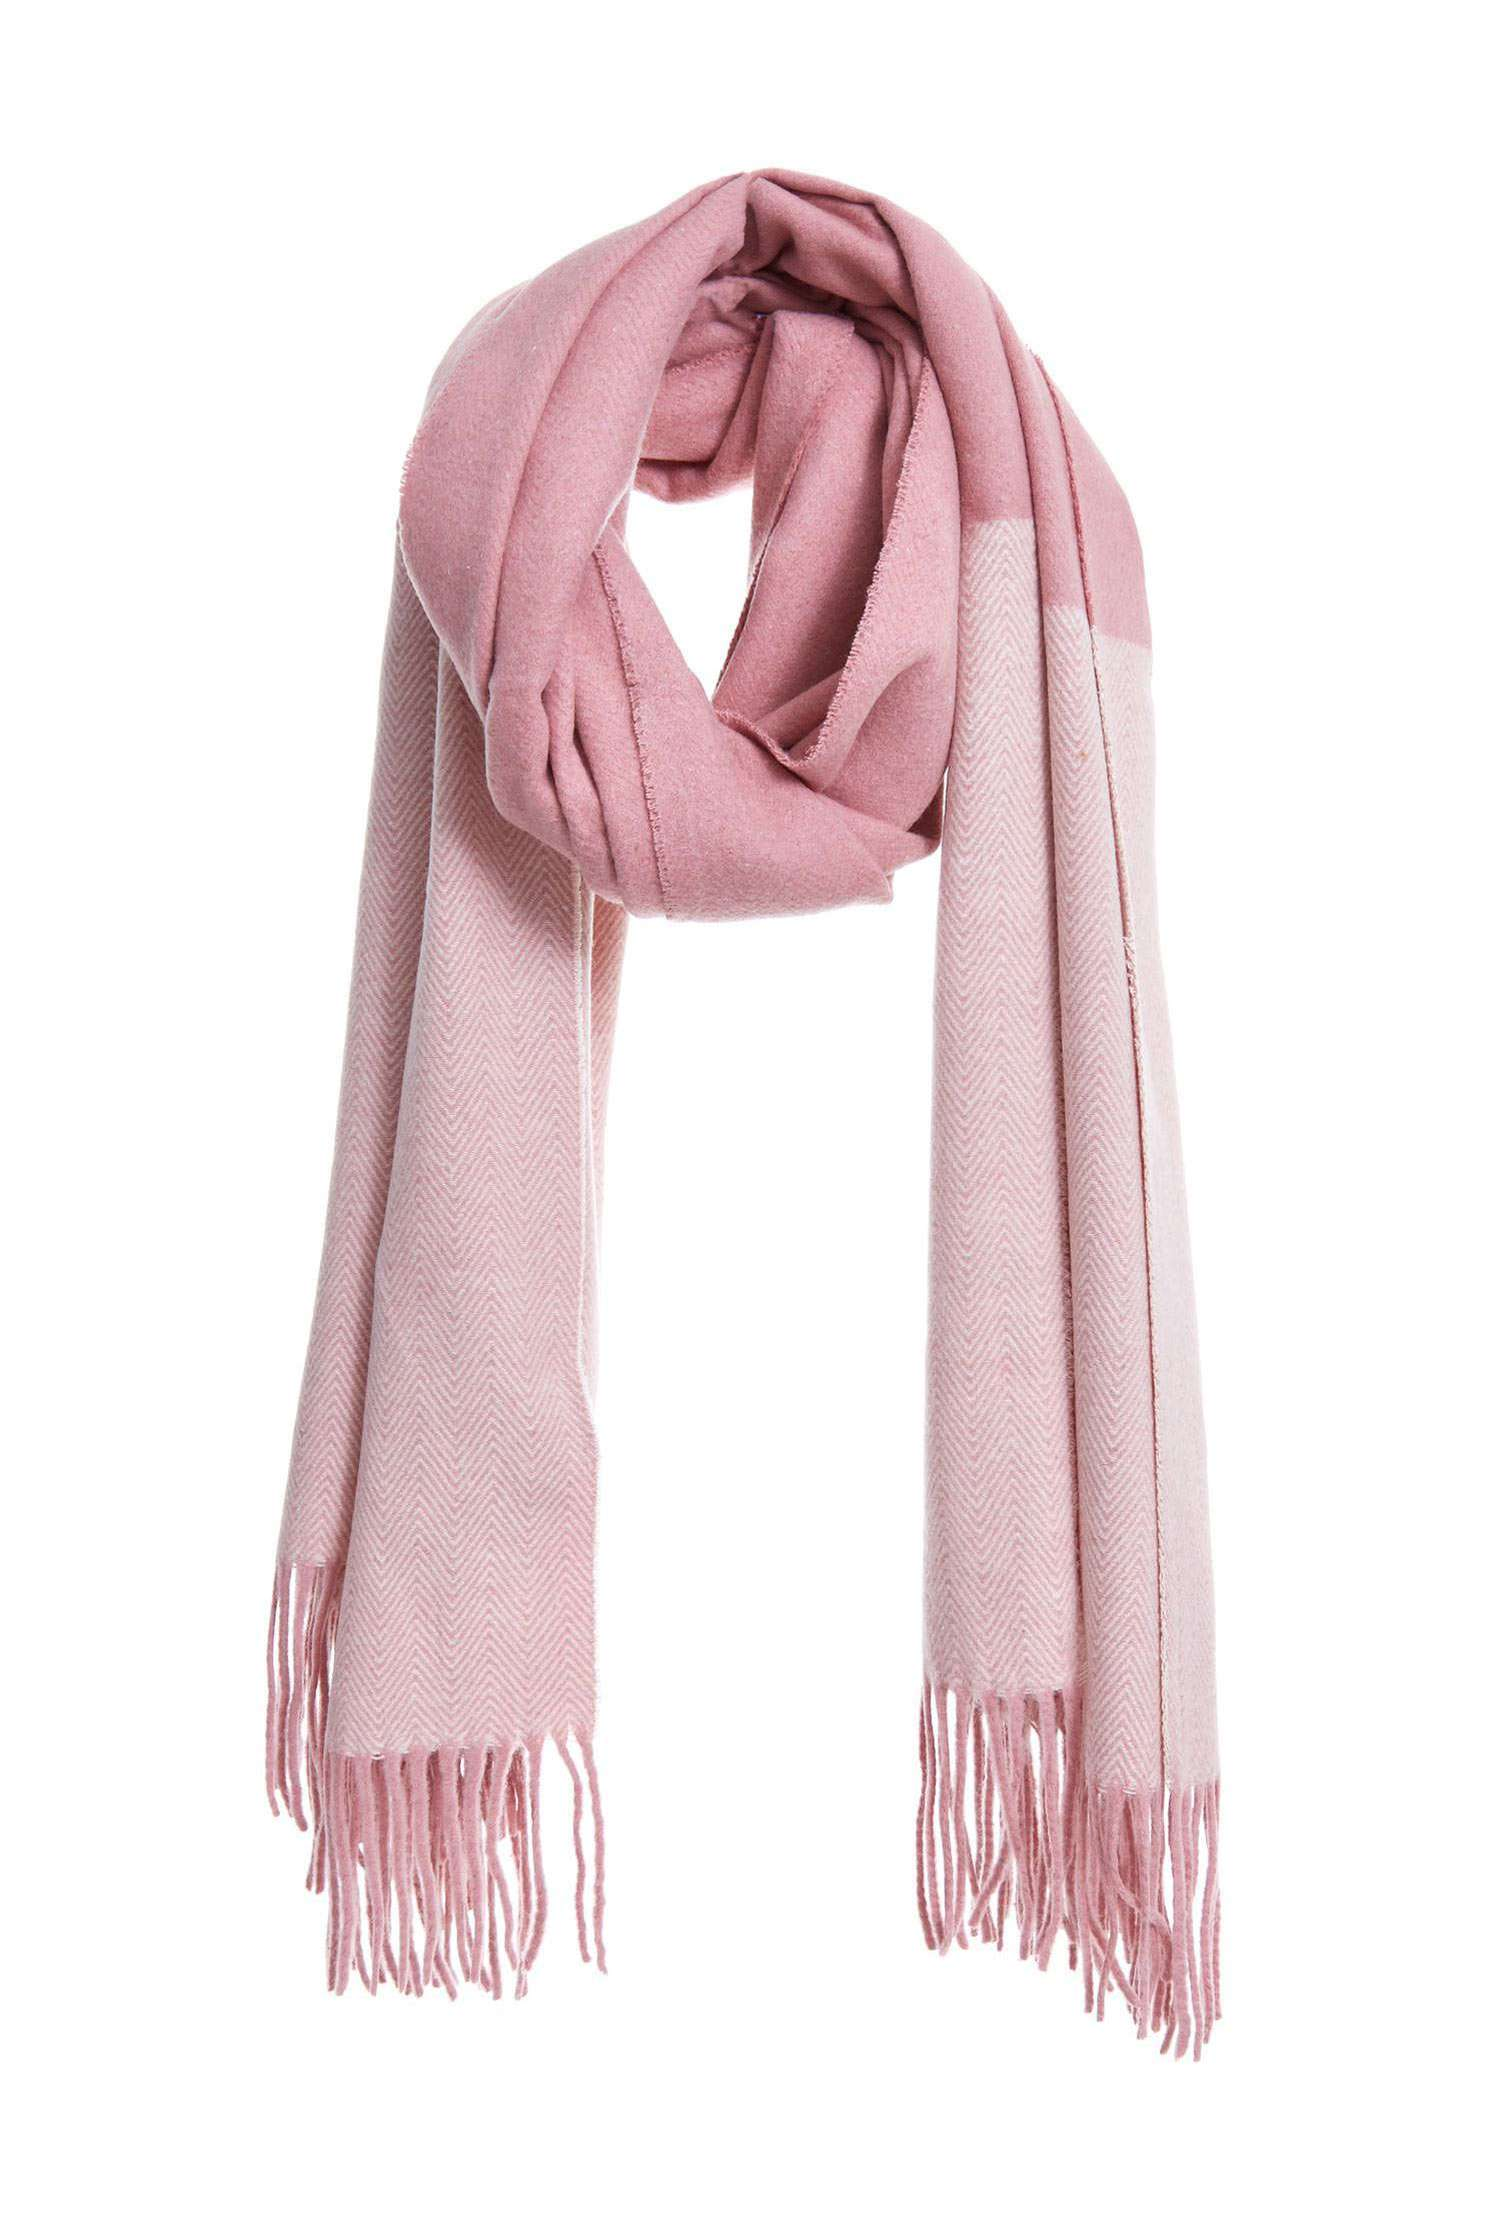 Wool coloured woven scarf,COLD FOR WINTER,Scarf